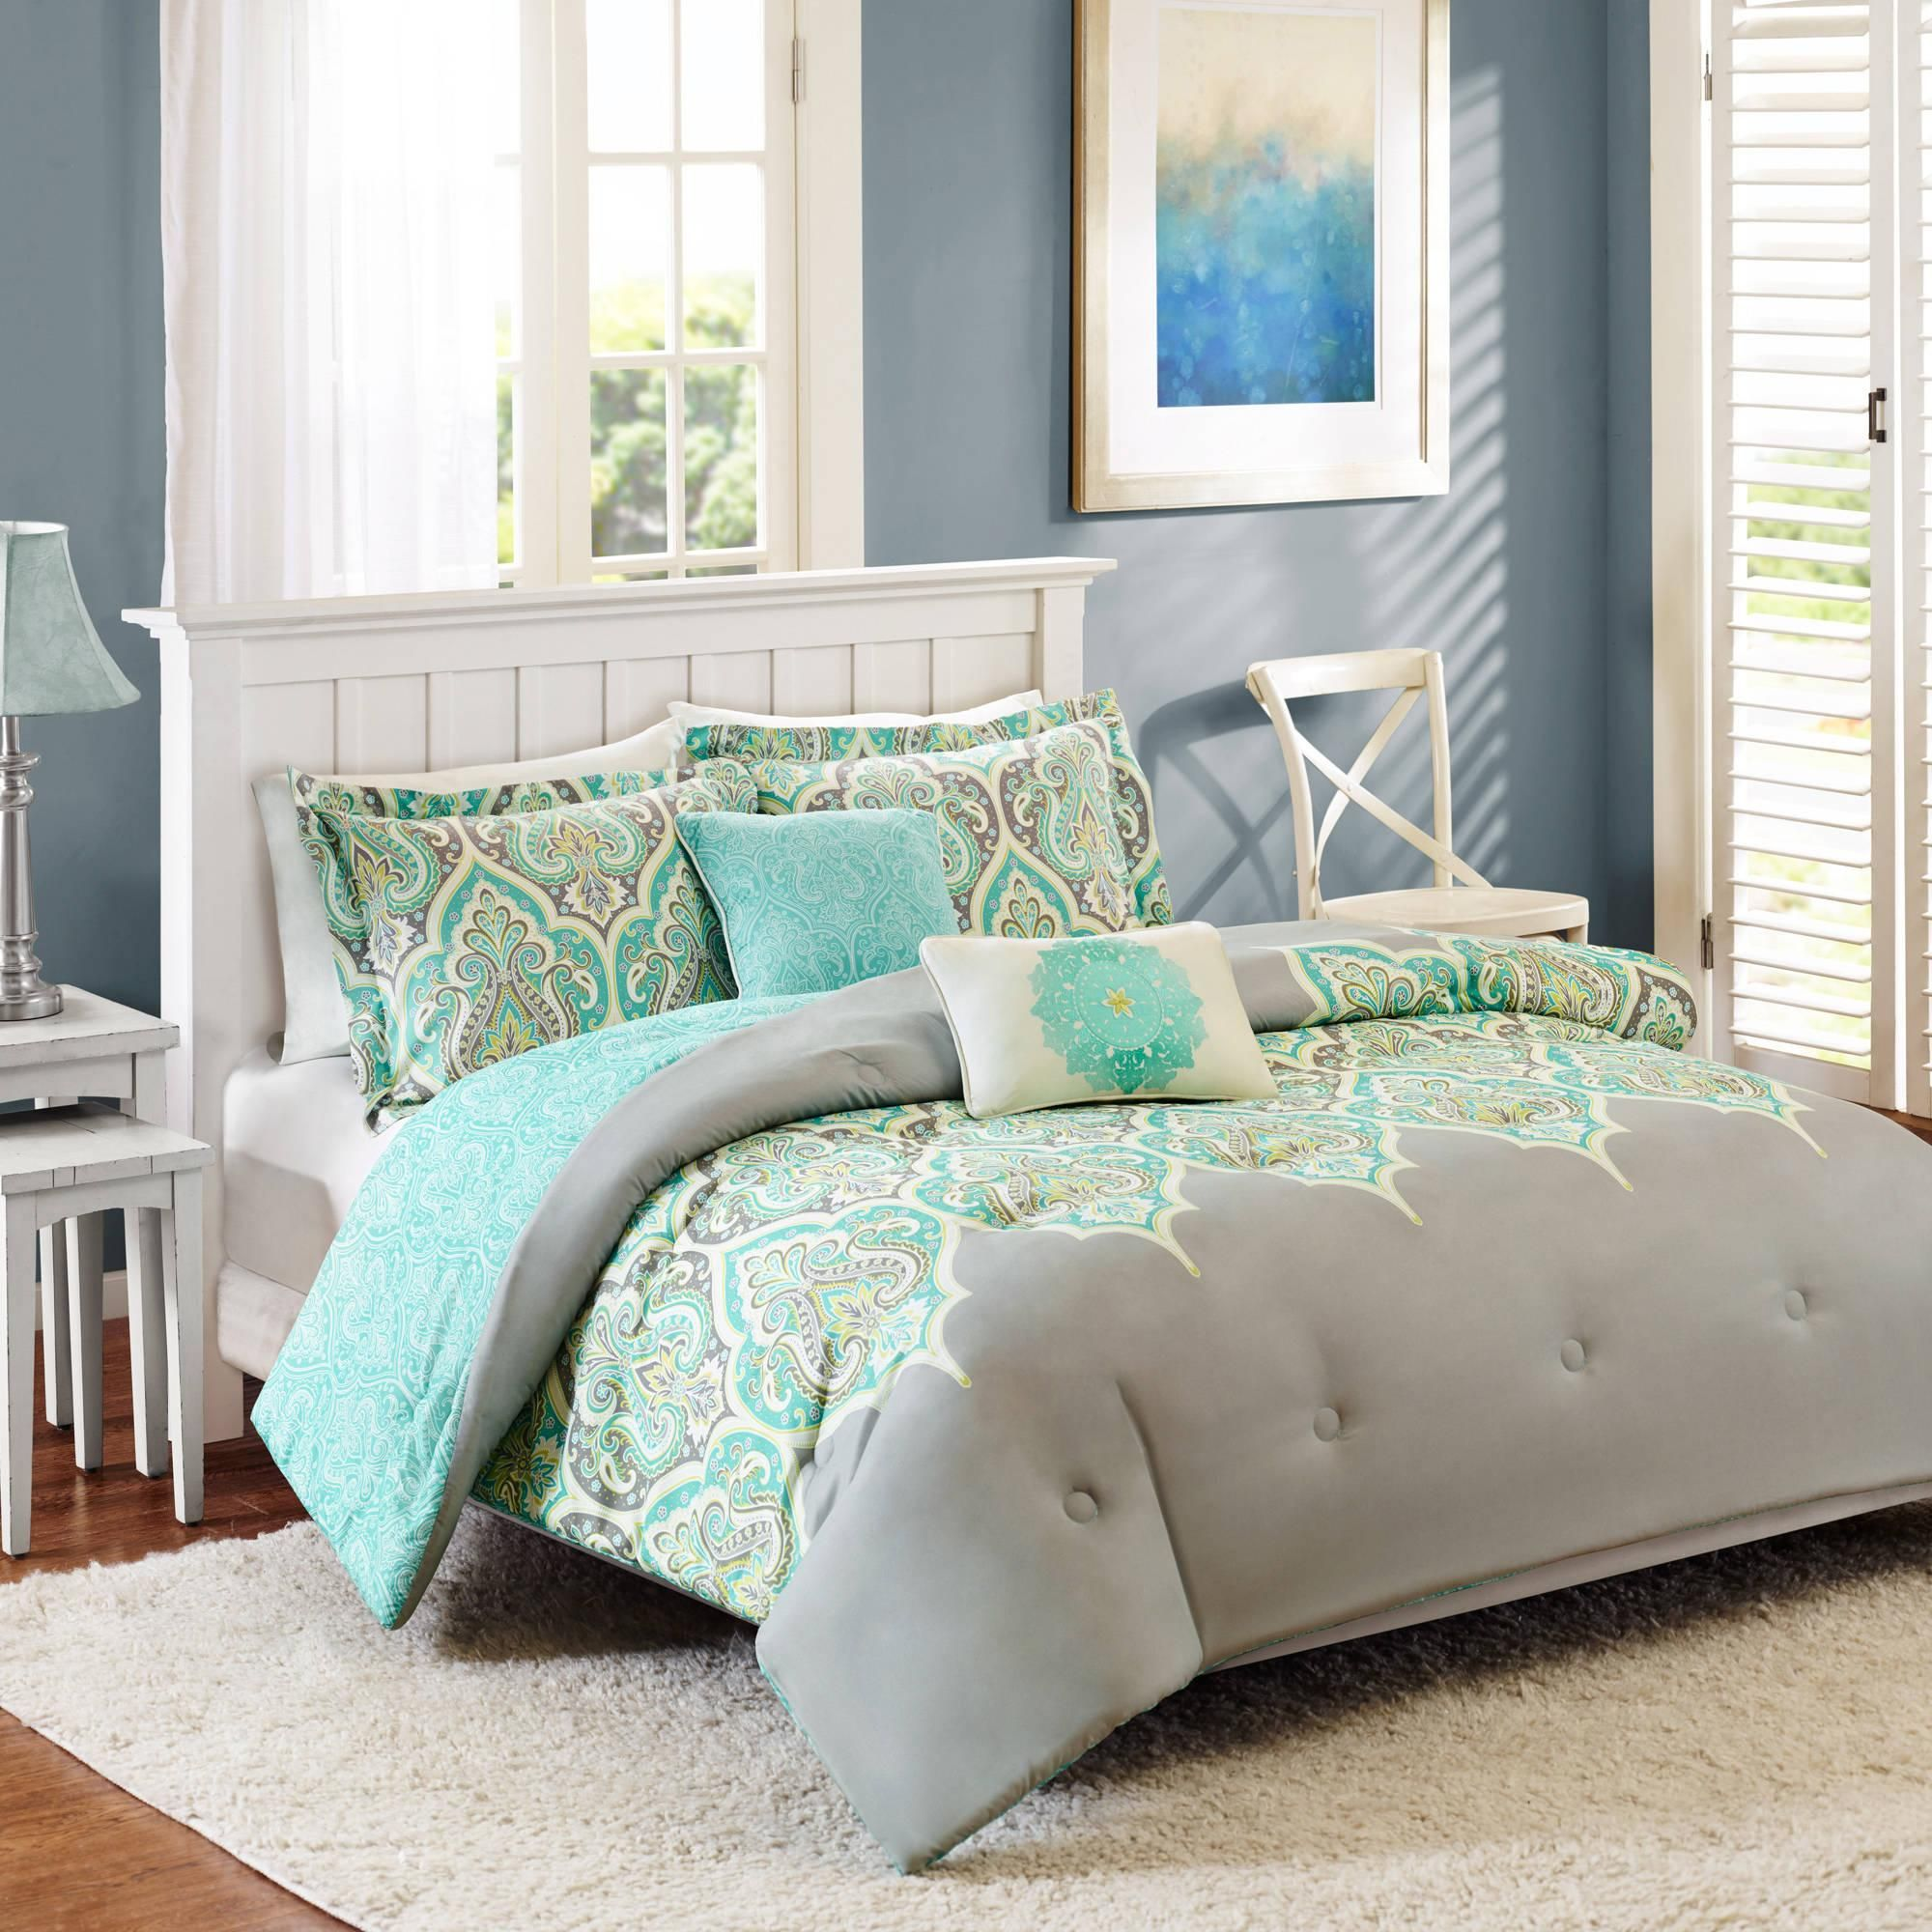 Attractive Likeness Of Better Homes And Garden Comforter Sets